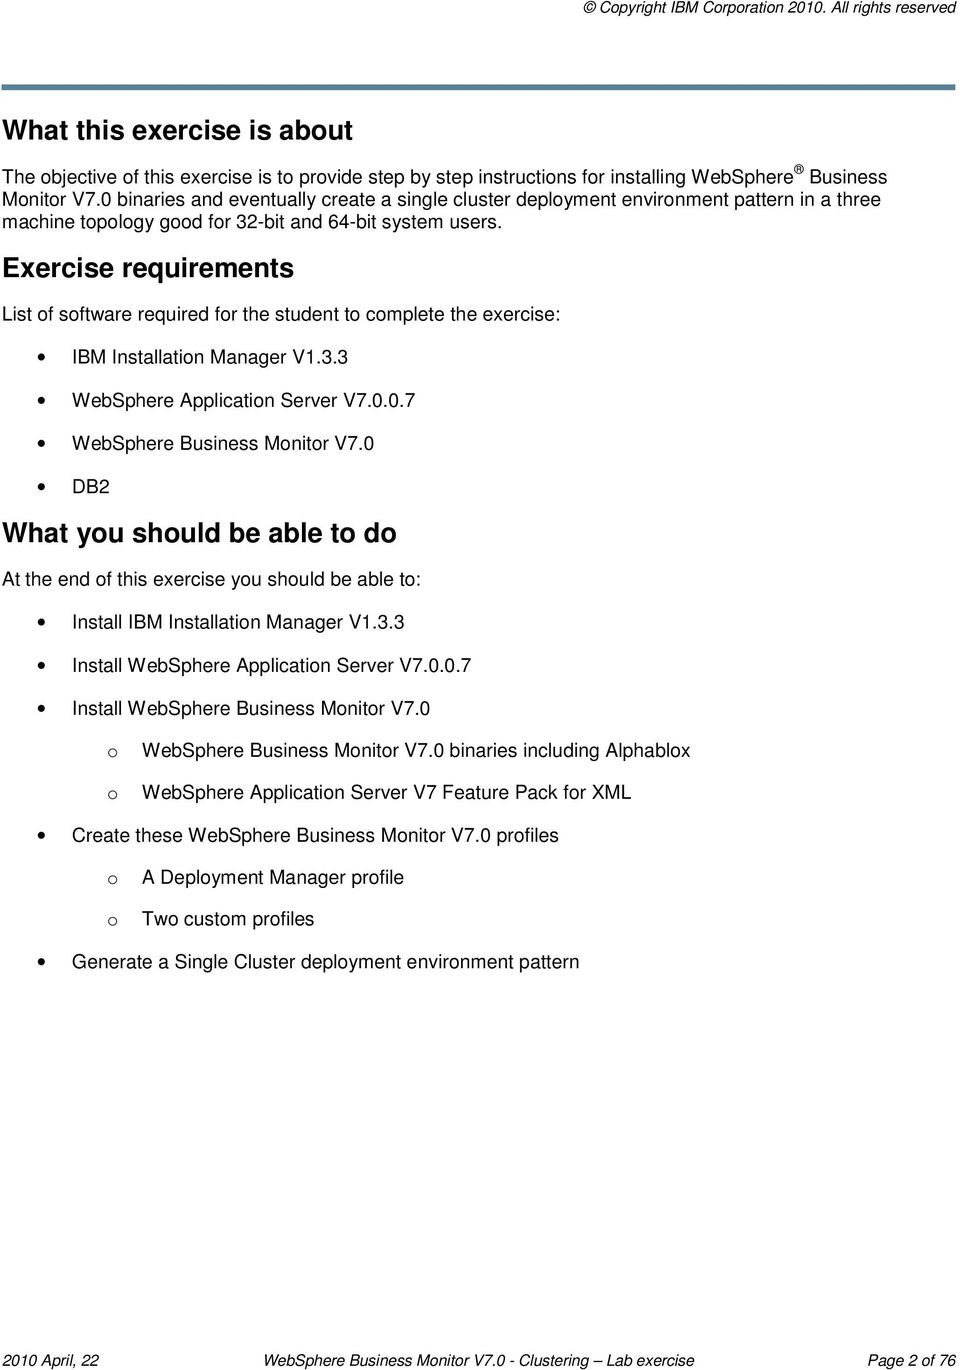 Exercise requirements List of software required for the student to complete the exercise: IBM Installation Manager V1.3.3 WebSphere Application Server V7.0.0.7 WebSphere Business Monitor V7.